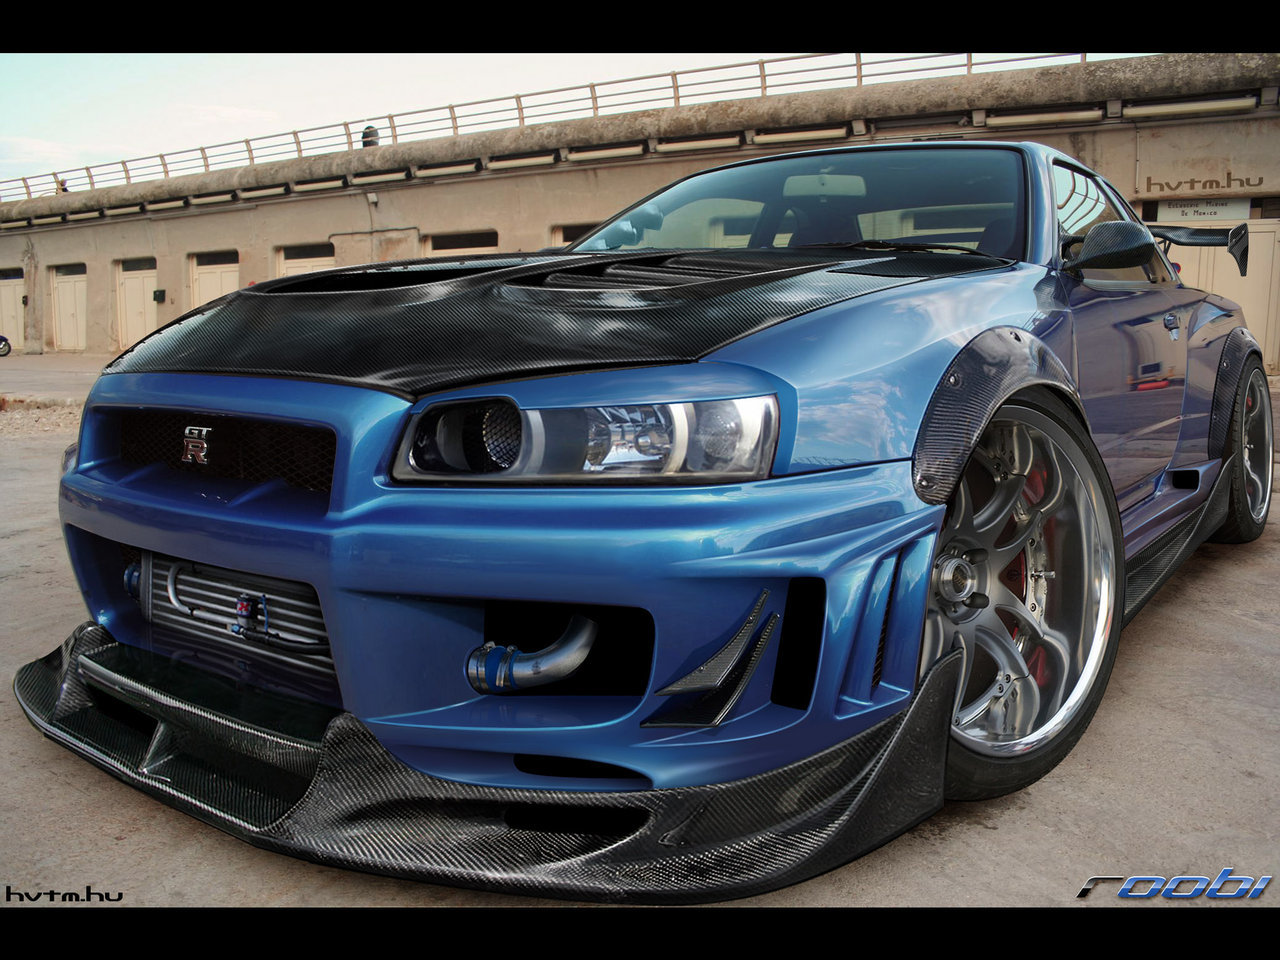 skylines cars Nissan vehicles HD Wallpaper